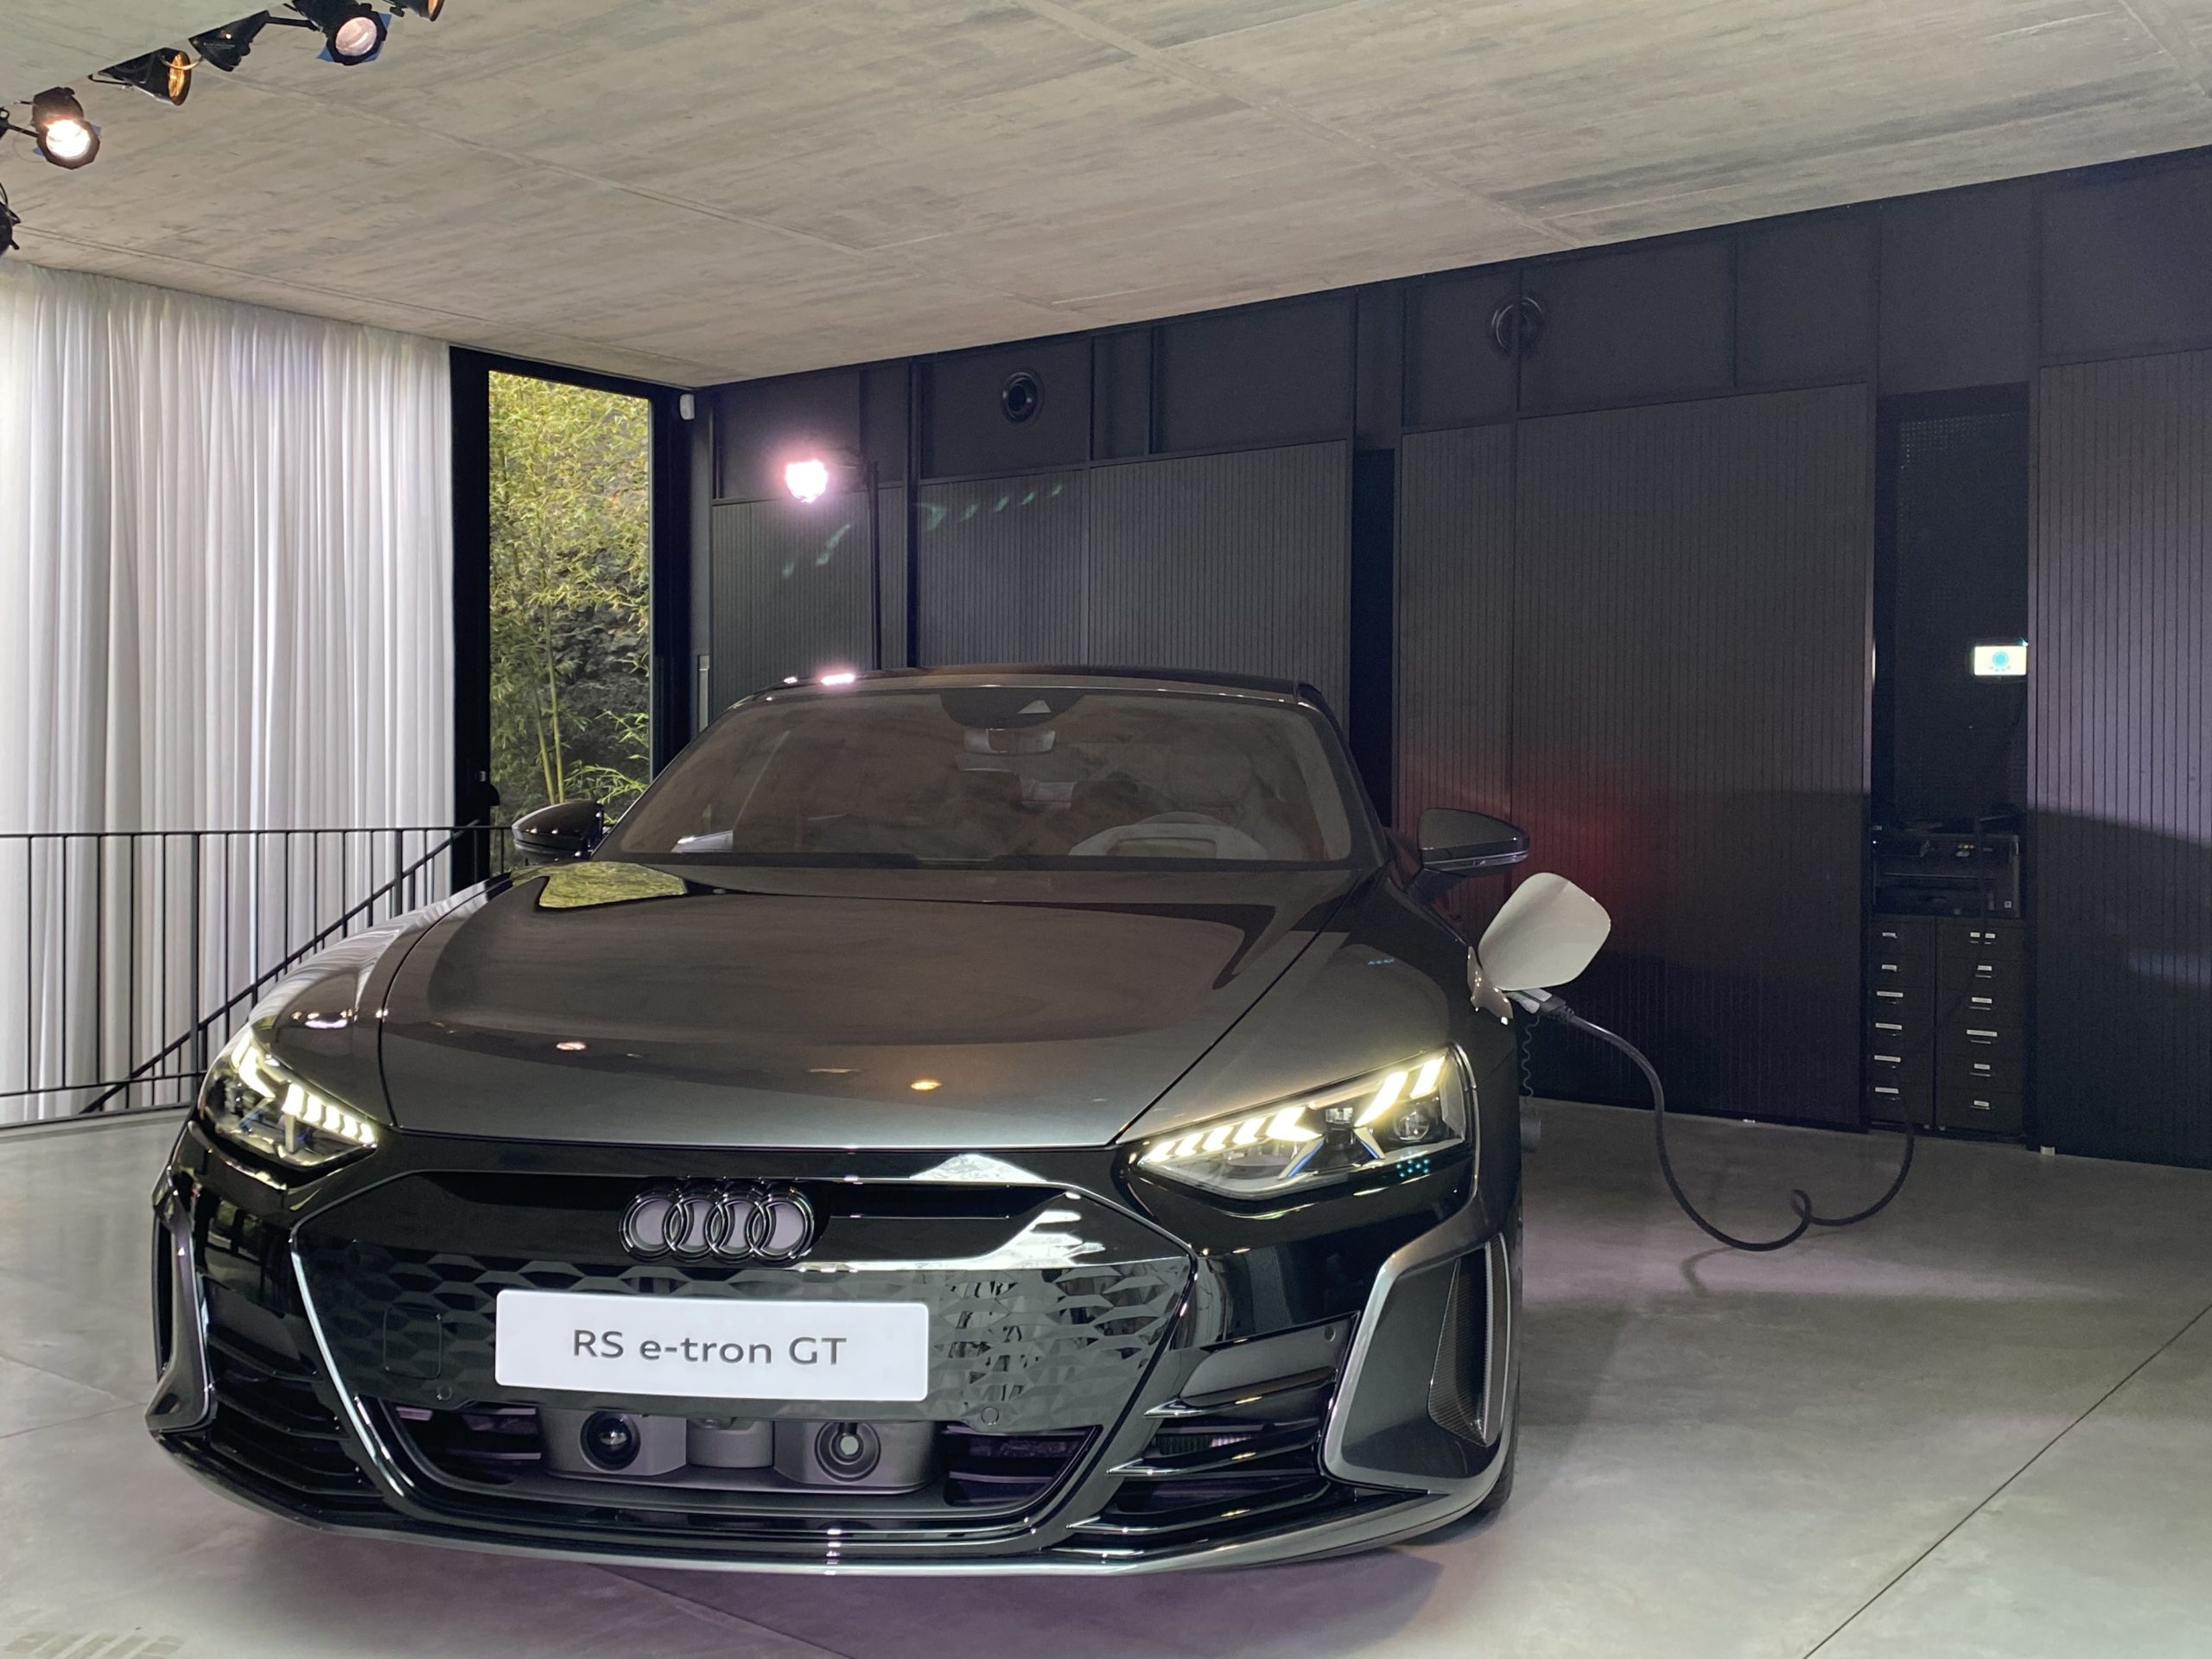 Groundbreaking innovation at Audi Spain launch